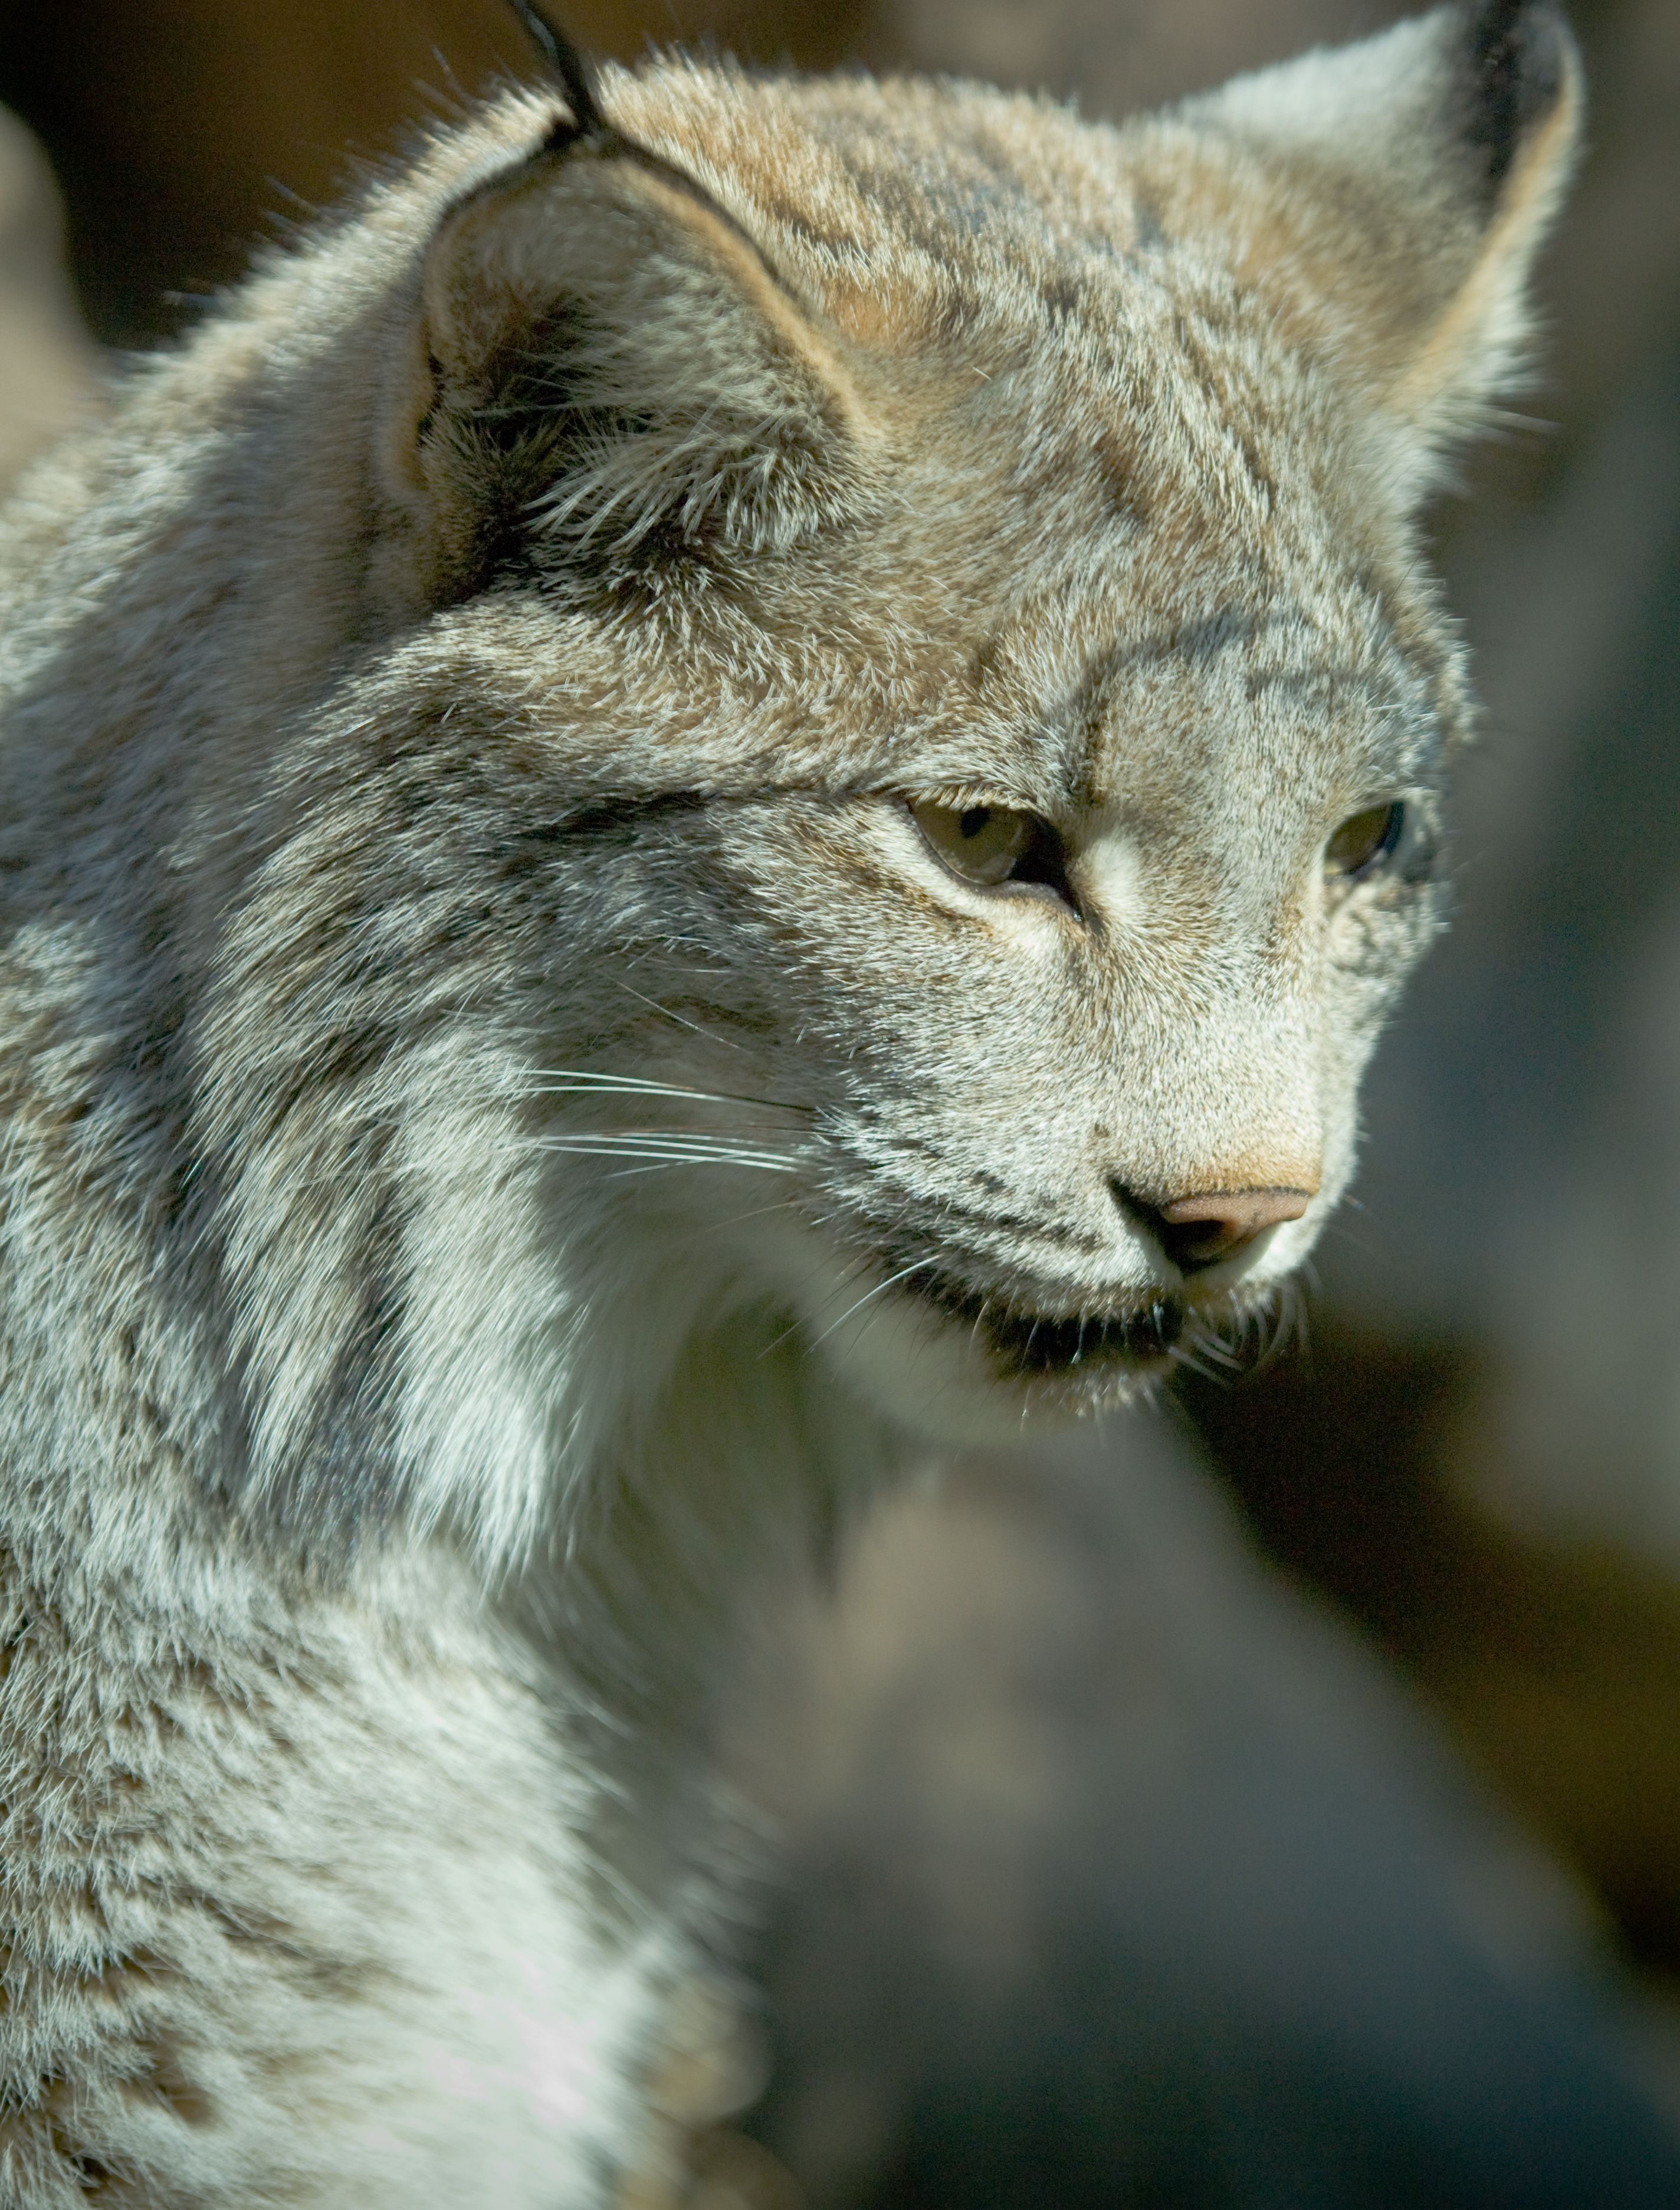 Lynx communicate using sounds similar to domestic house